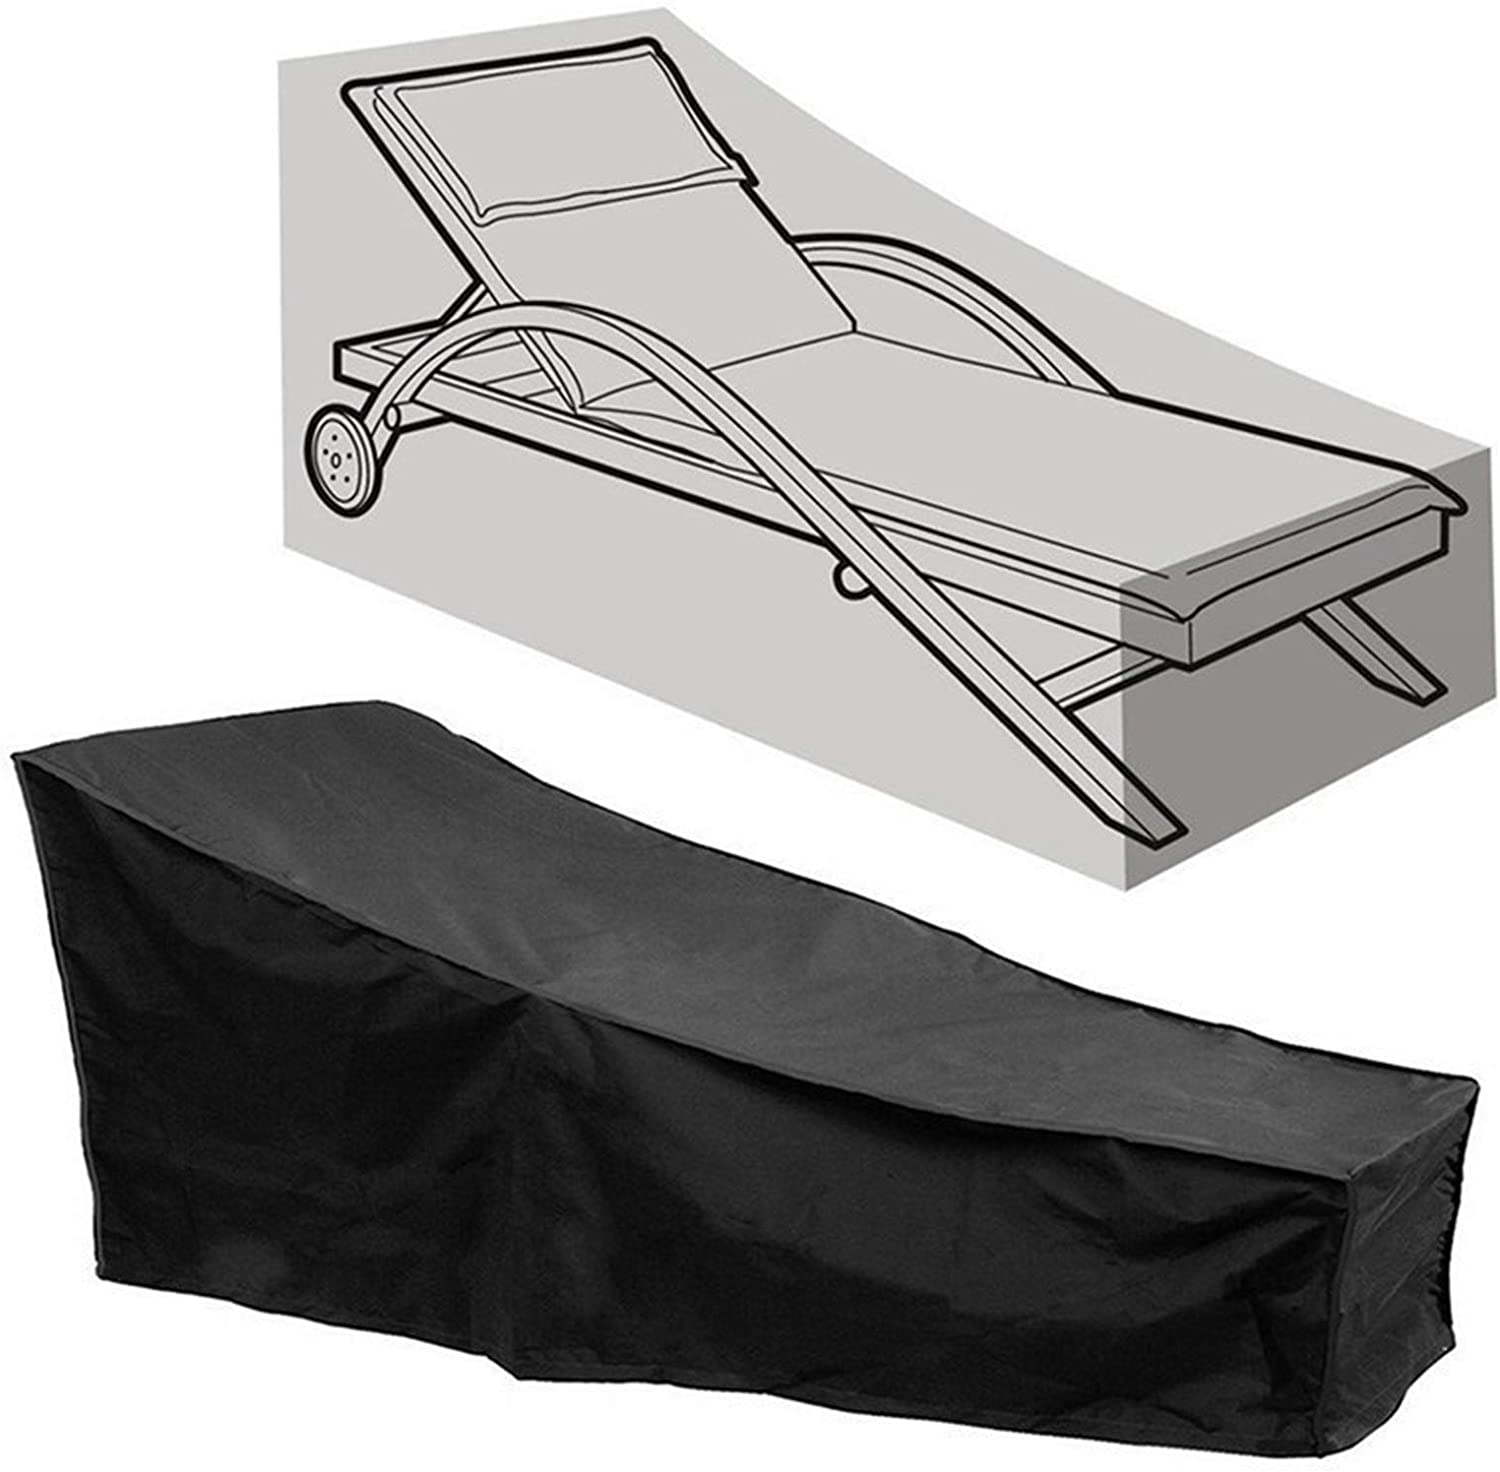 PATIO CHAISE LOUNGE COVER WATERPROOF SUNLOUNGER COVEROUTDOOR LOUNGE CHAIR COVER ANTI-UV AND DUSTPROOF LAWN FURNITURE COVER (BLACK 1)